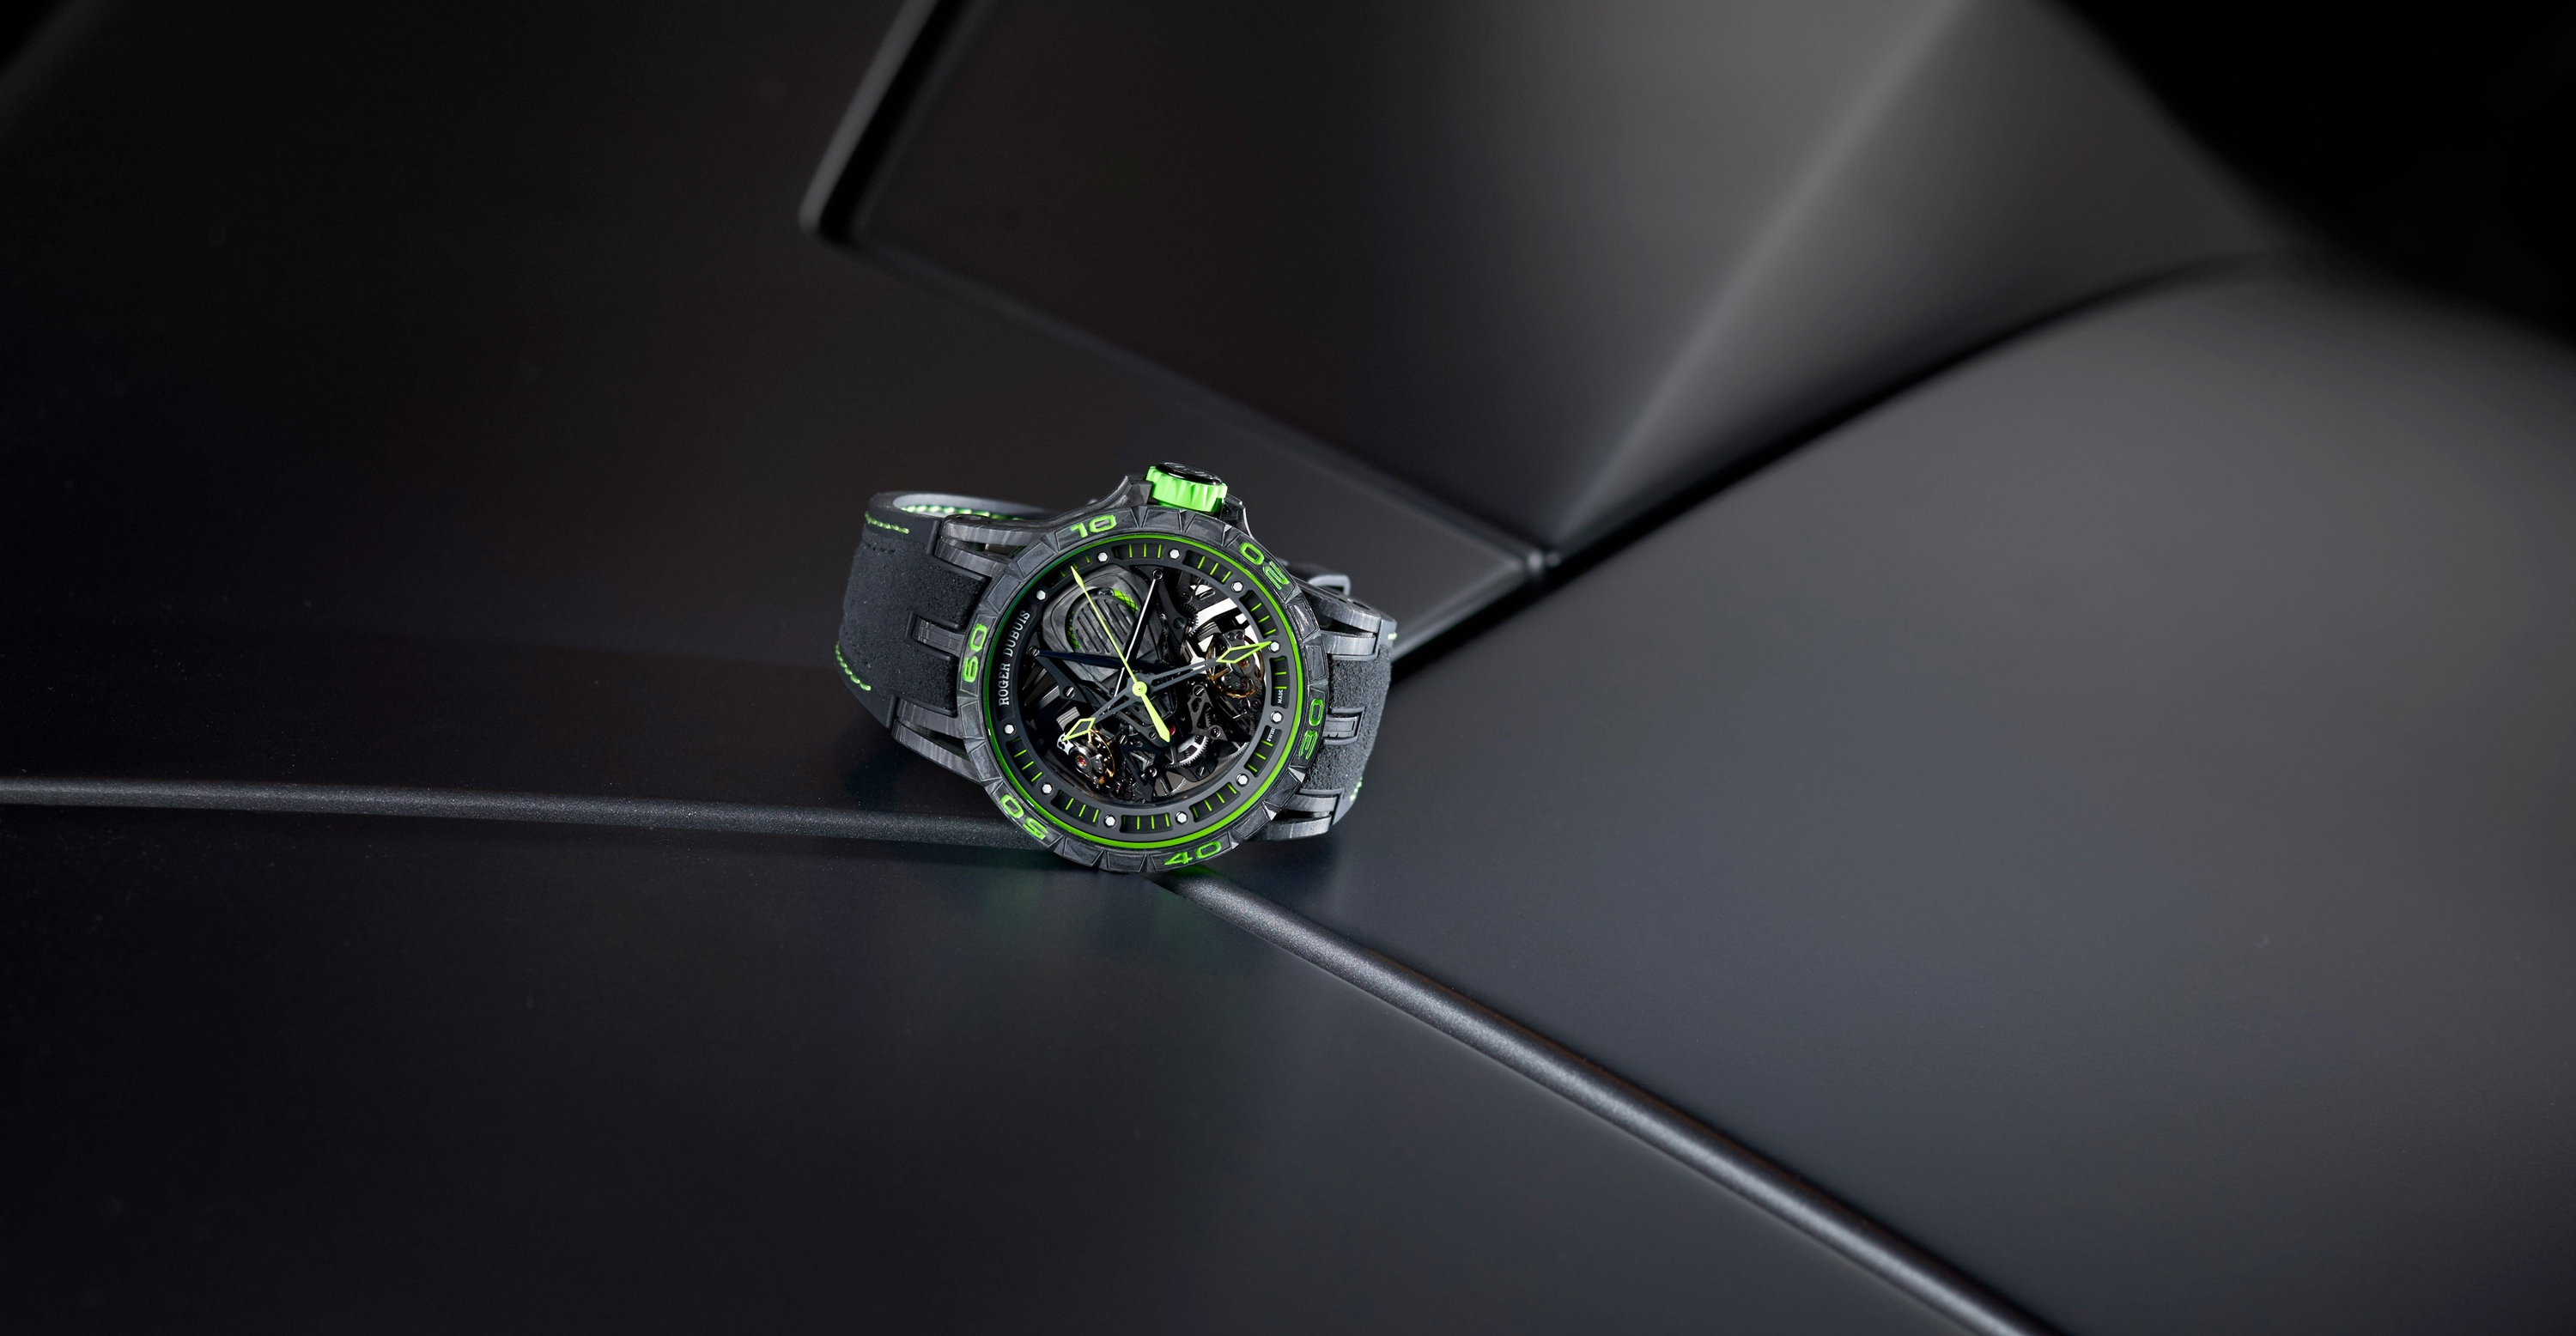 The Latest Collaboration Between Roger Dubuis and Lamborghini